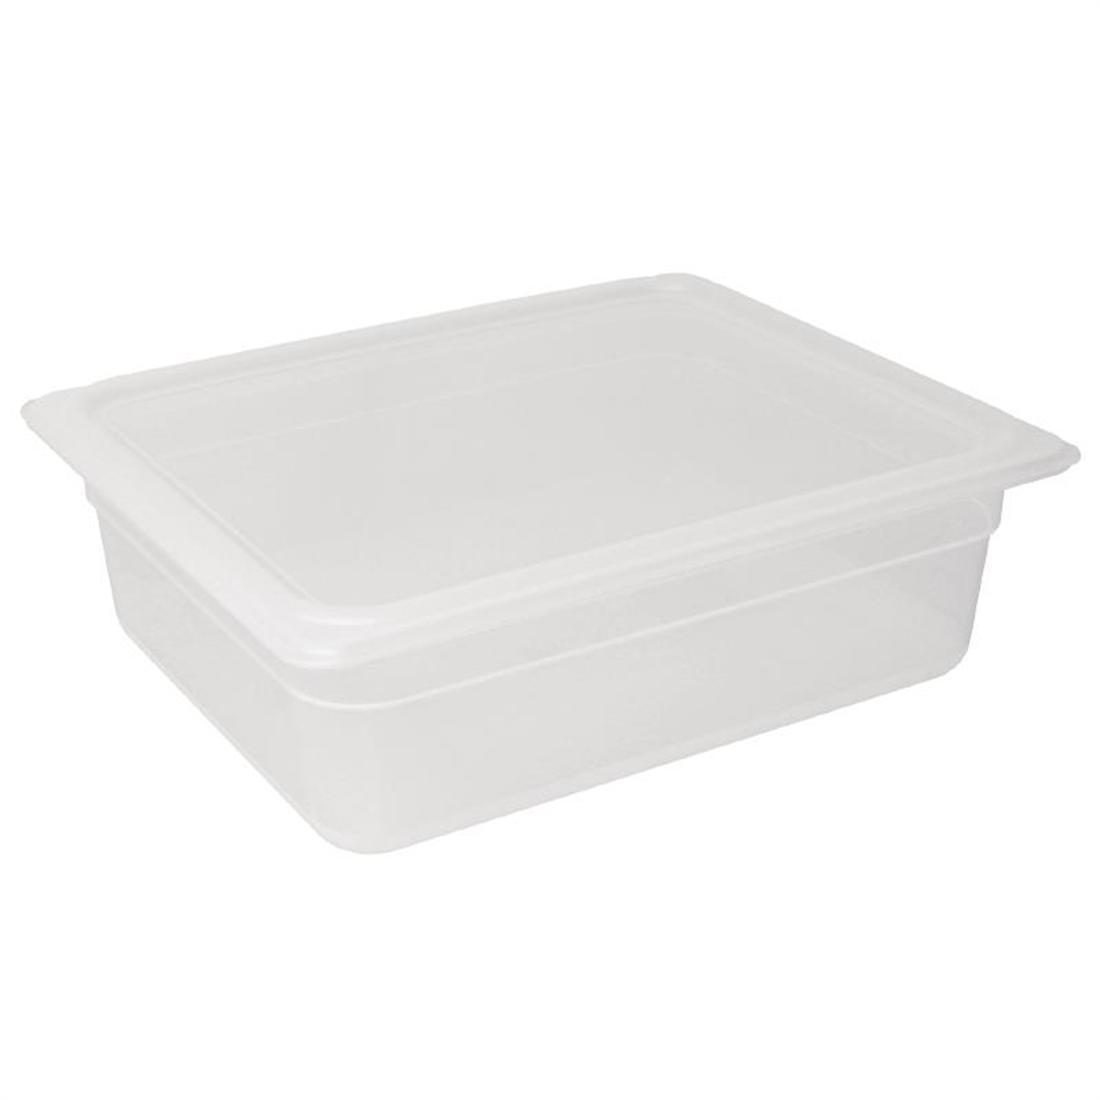 Vogue Polypropylene 1/2 Gastronorm Container with Lid 150mm - Pack of 4 - GJ516